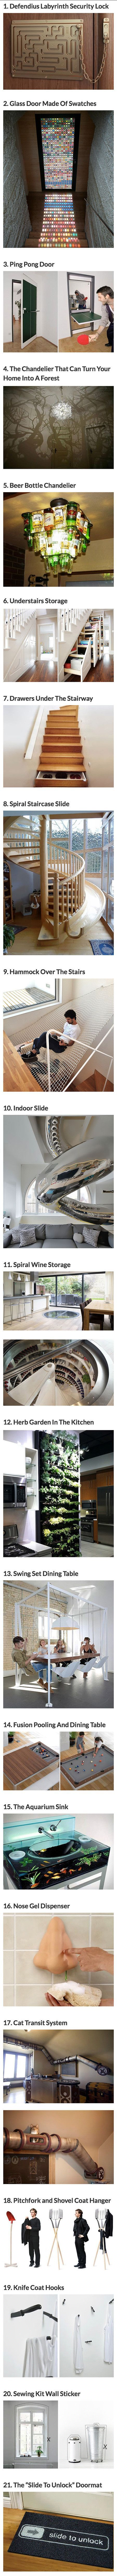 Some of these ideas would be amazing fun depending on my future home